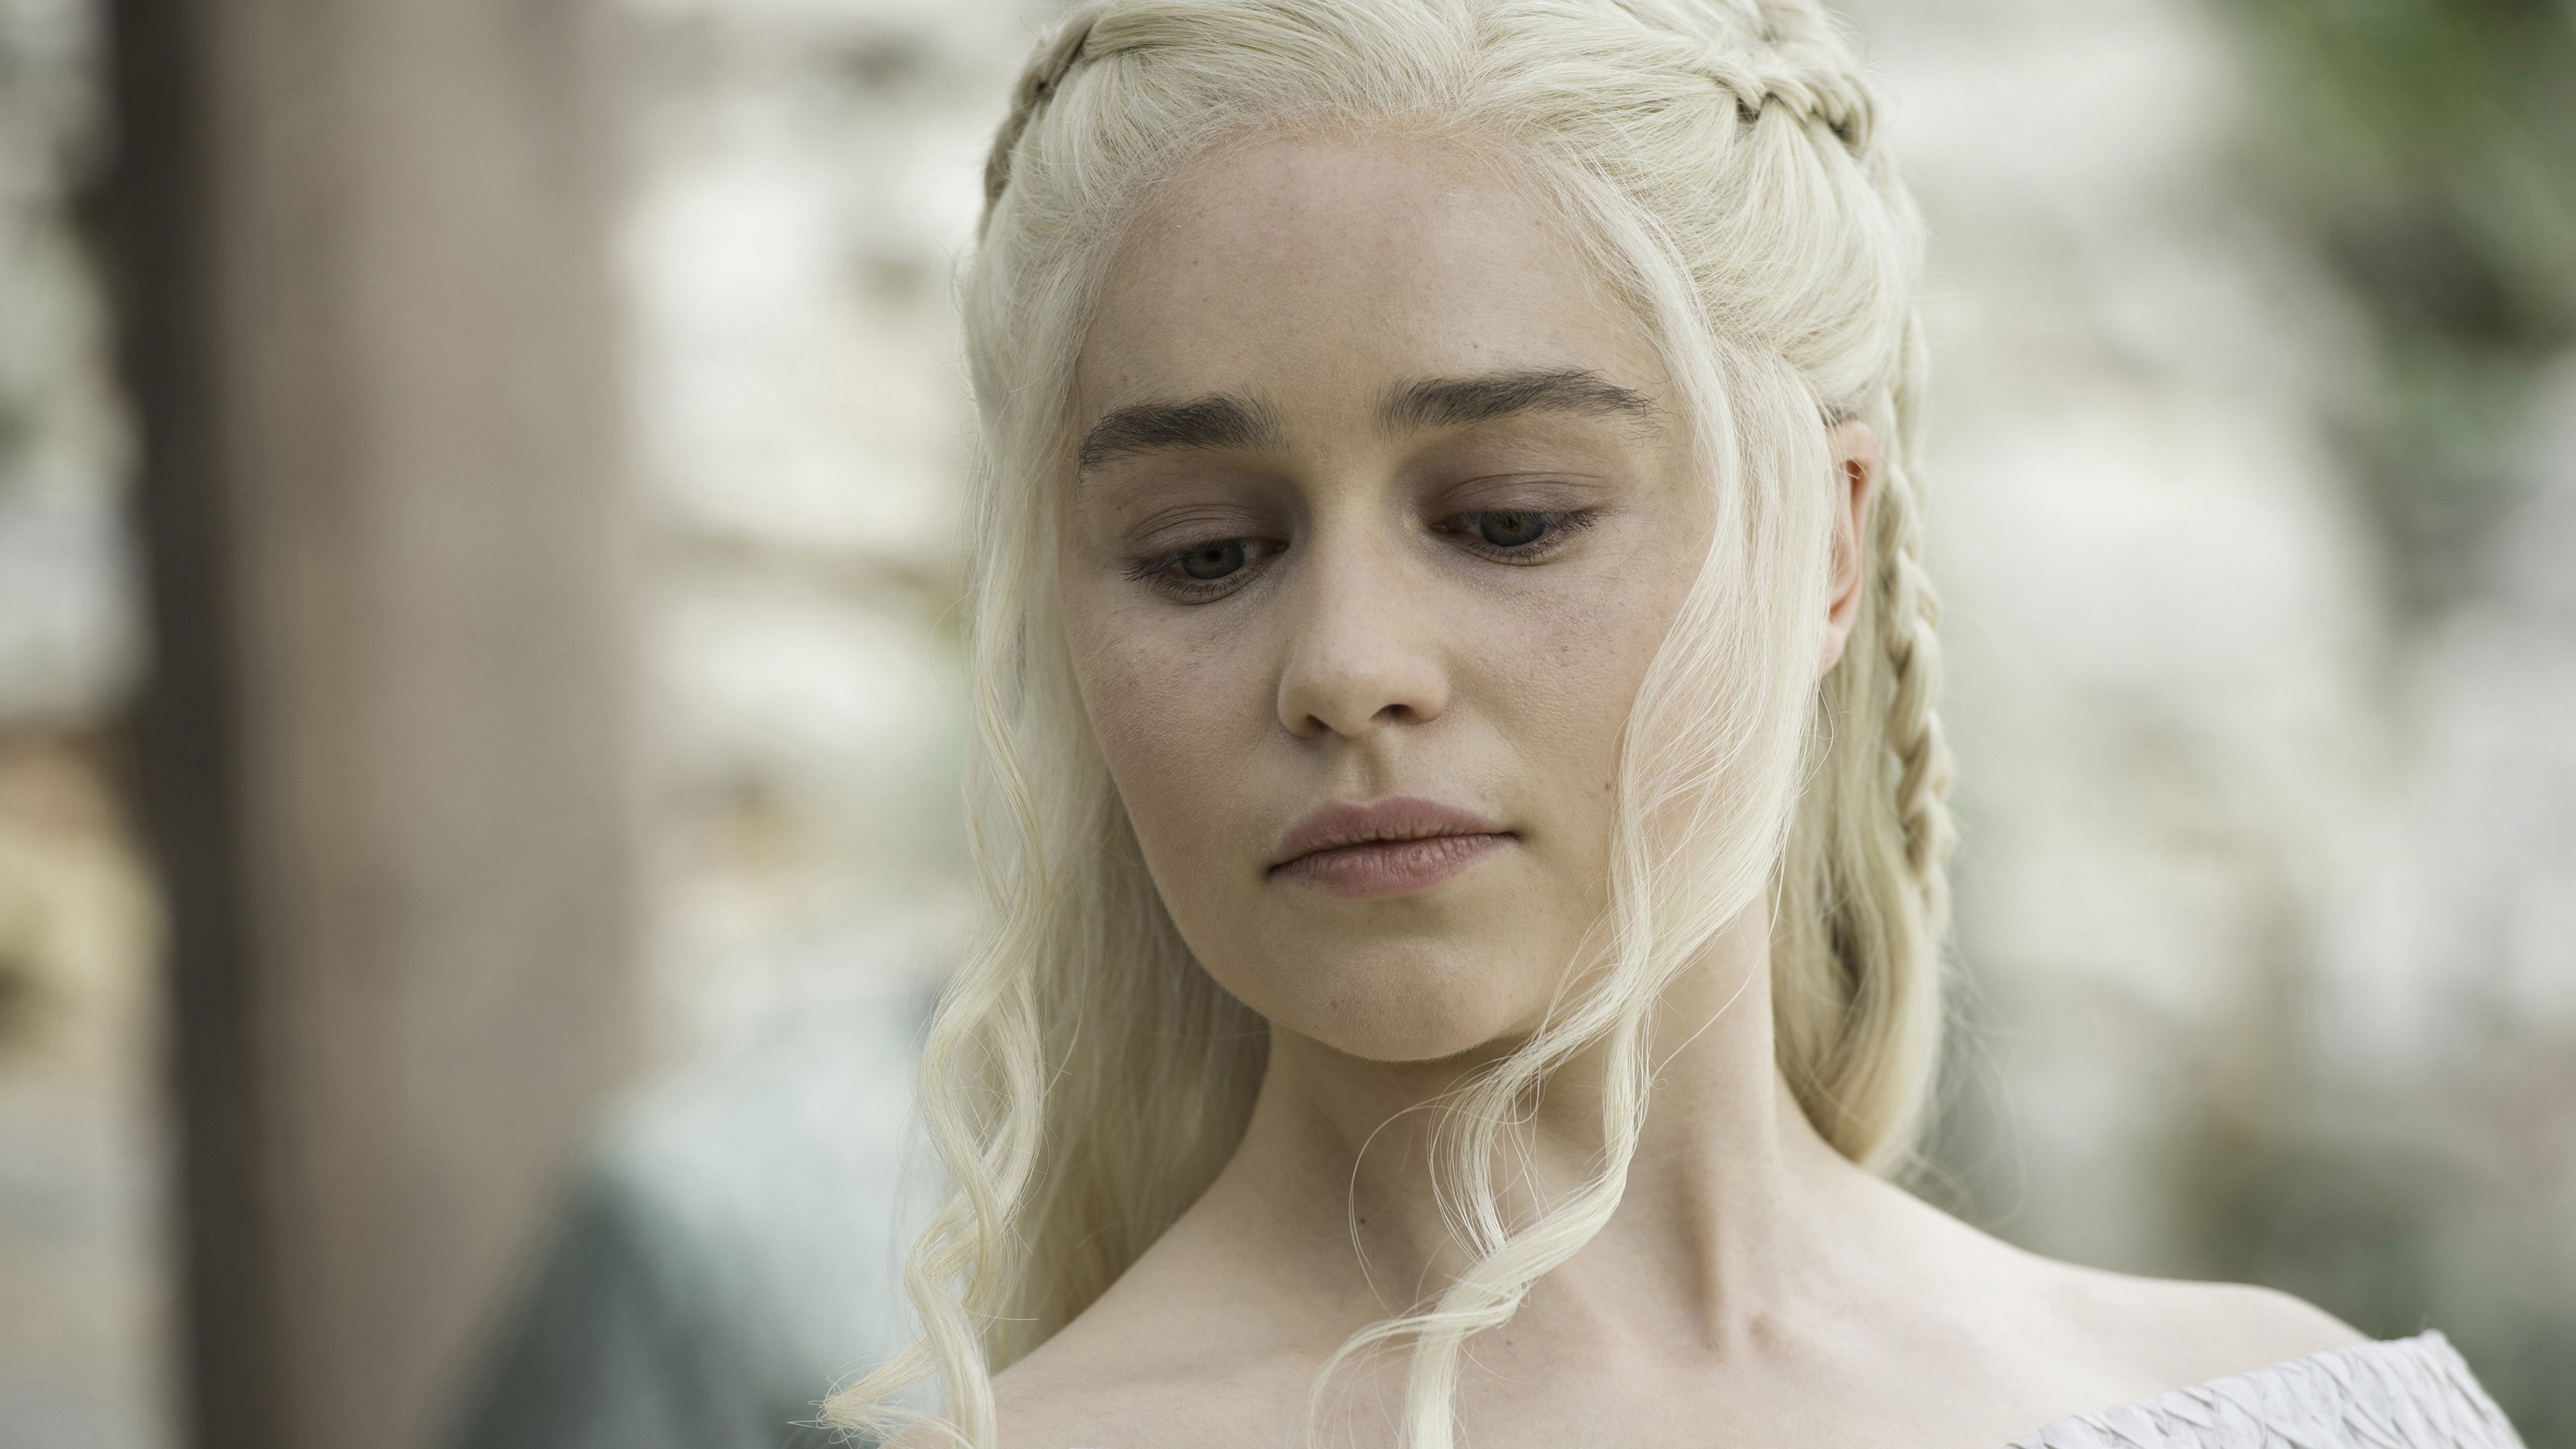 Wallpaper Game Of Thrones A Song Of Ice And Fire Daenerys